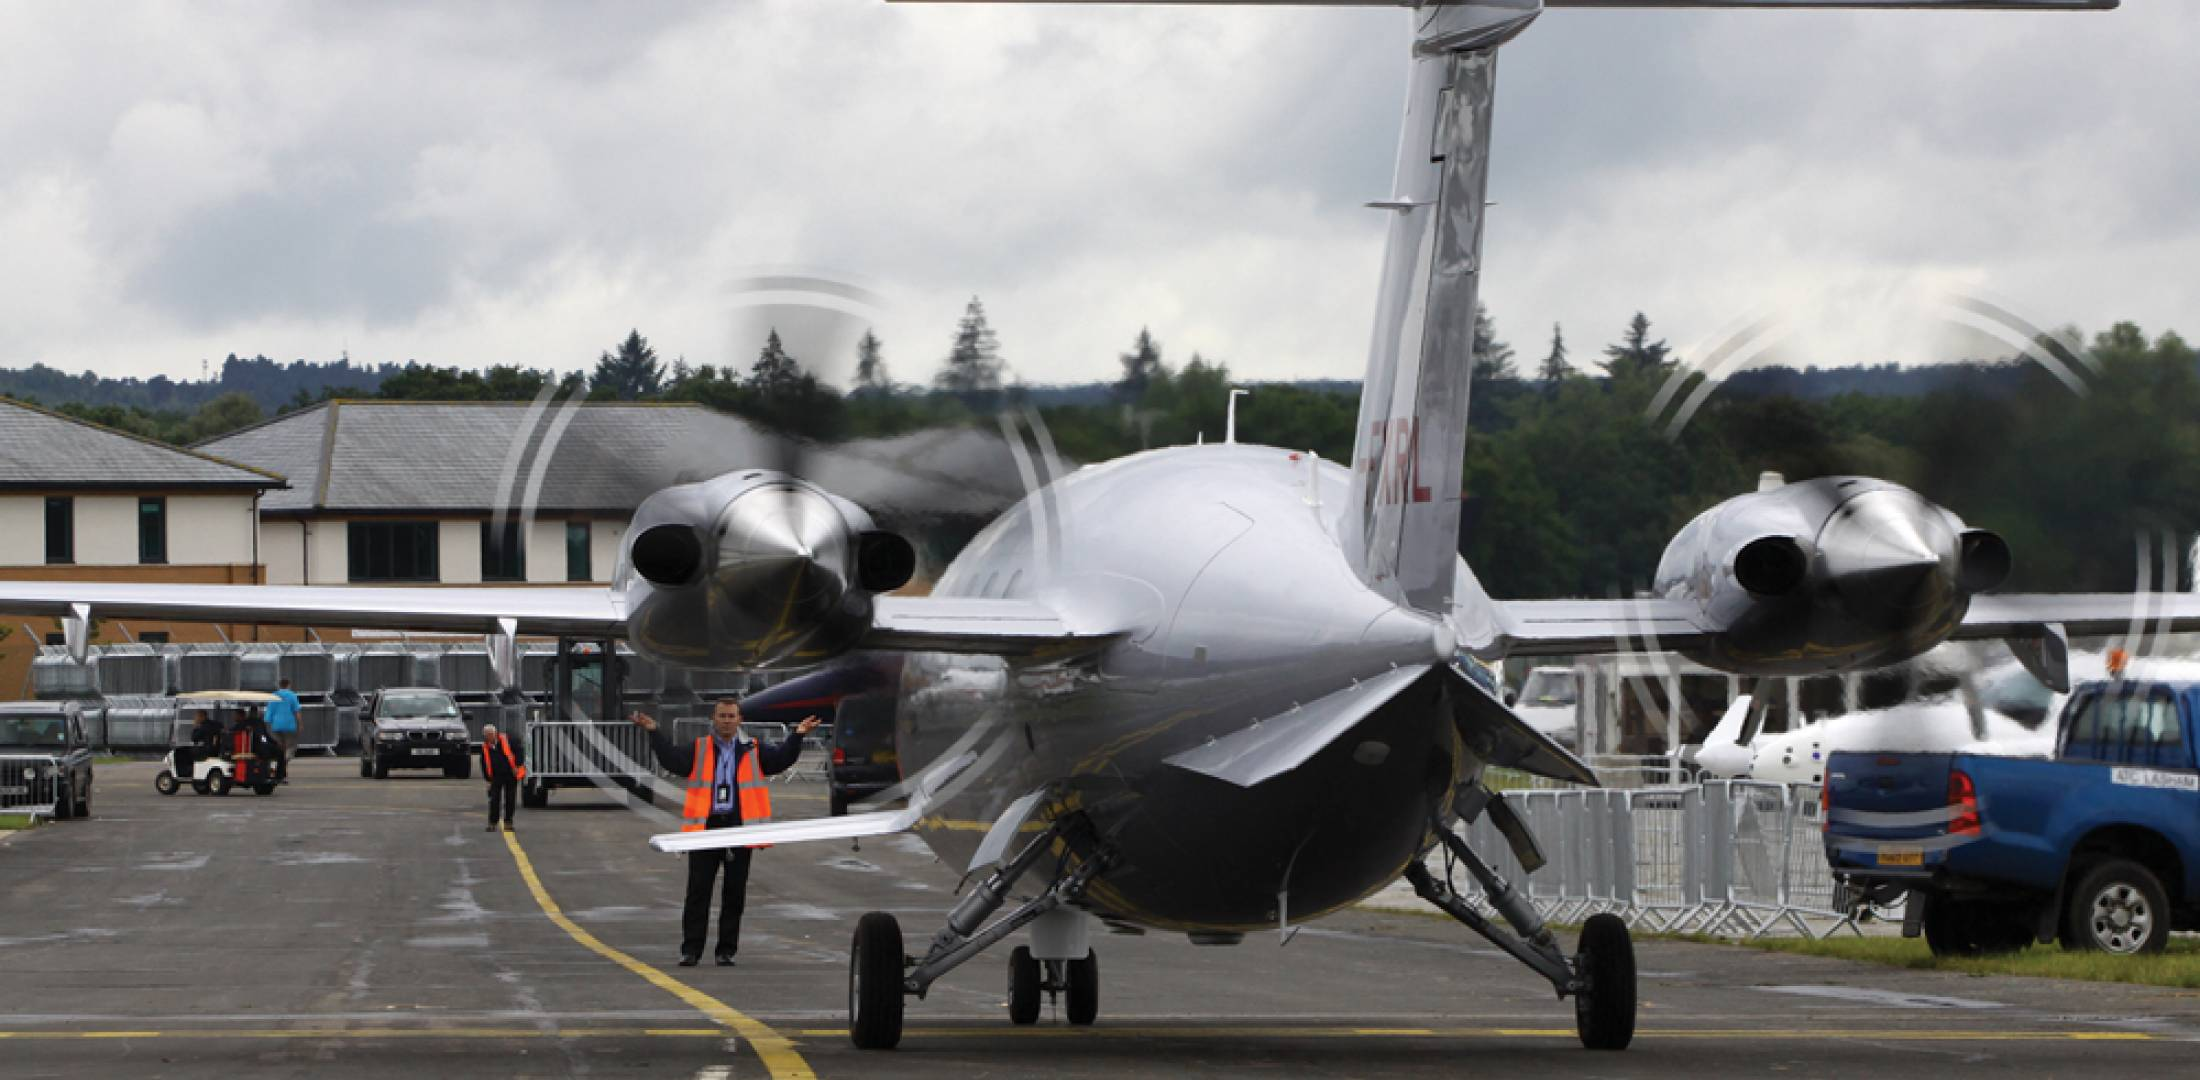 share owners of ex-avantair aircraft get pathway forward